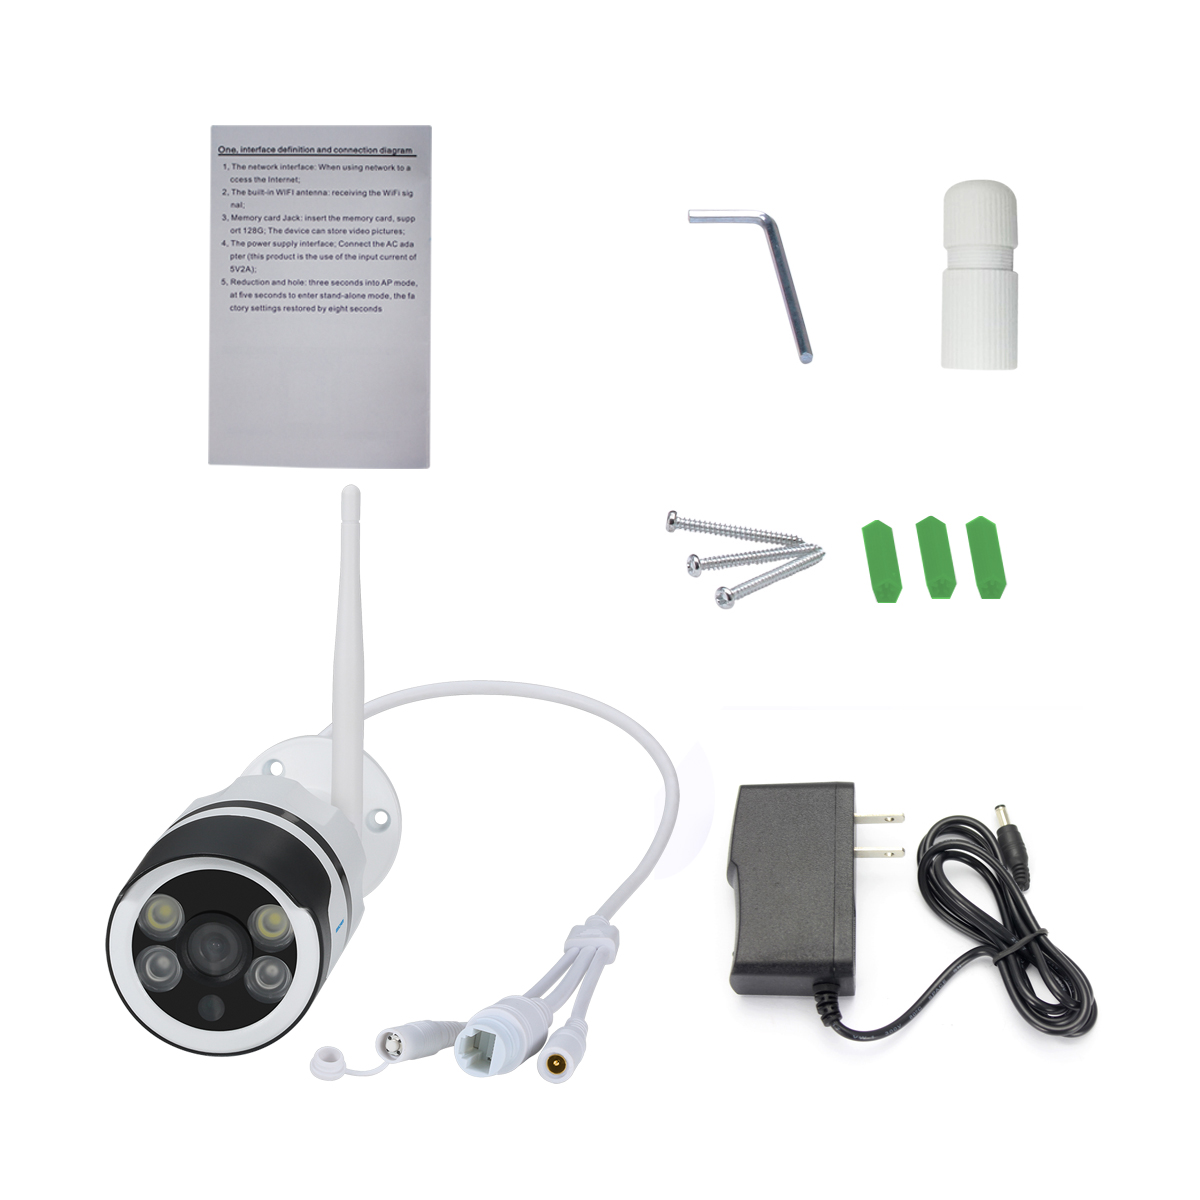 ESCAM QF508 Two Way Audio Outdoor Security IP Camera (1080P Full-HD